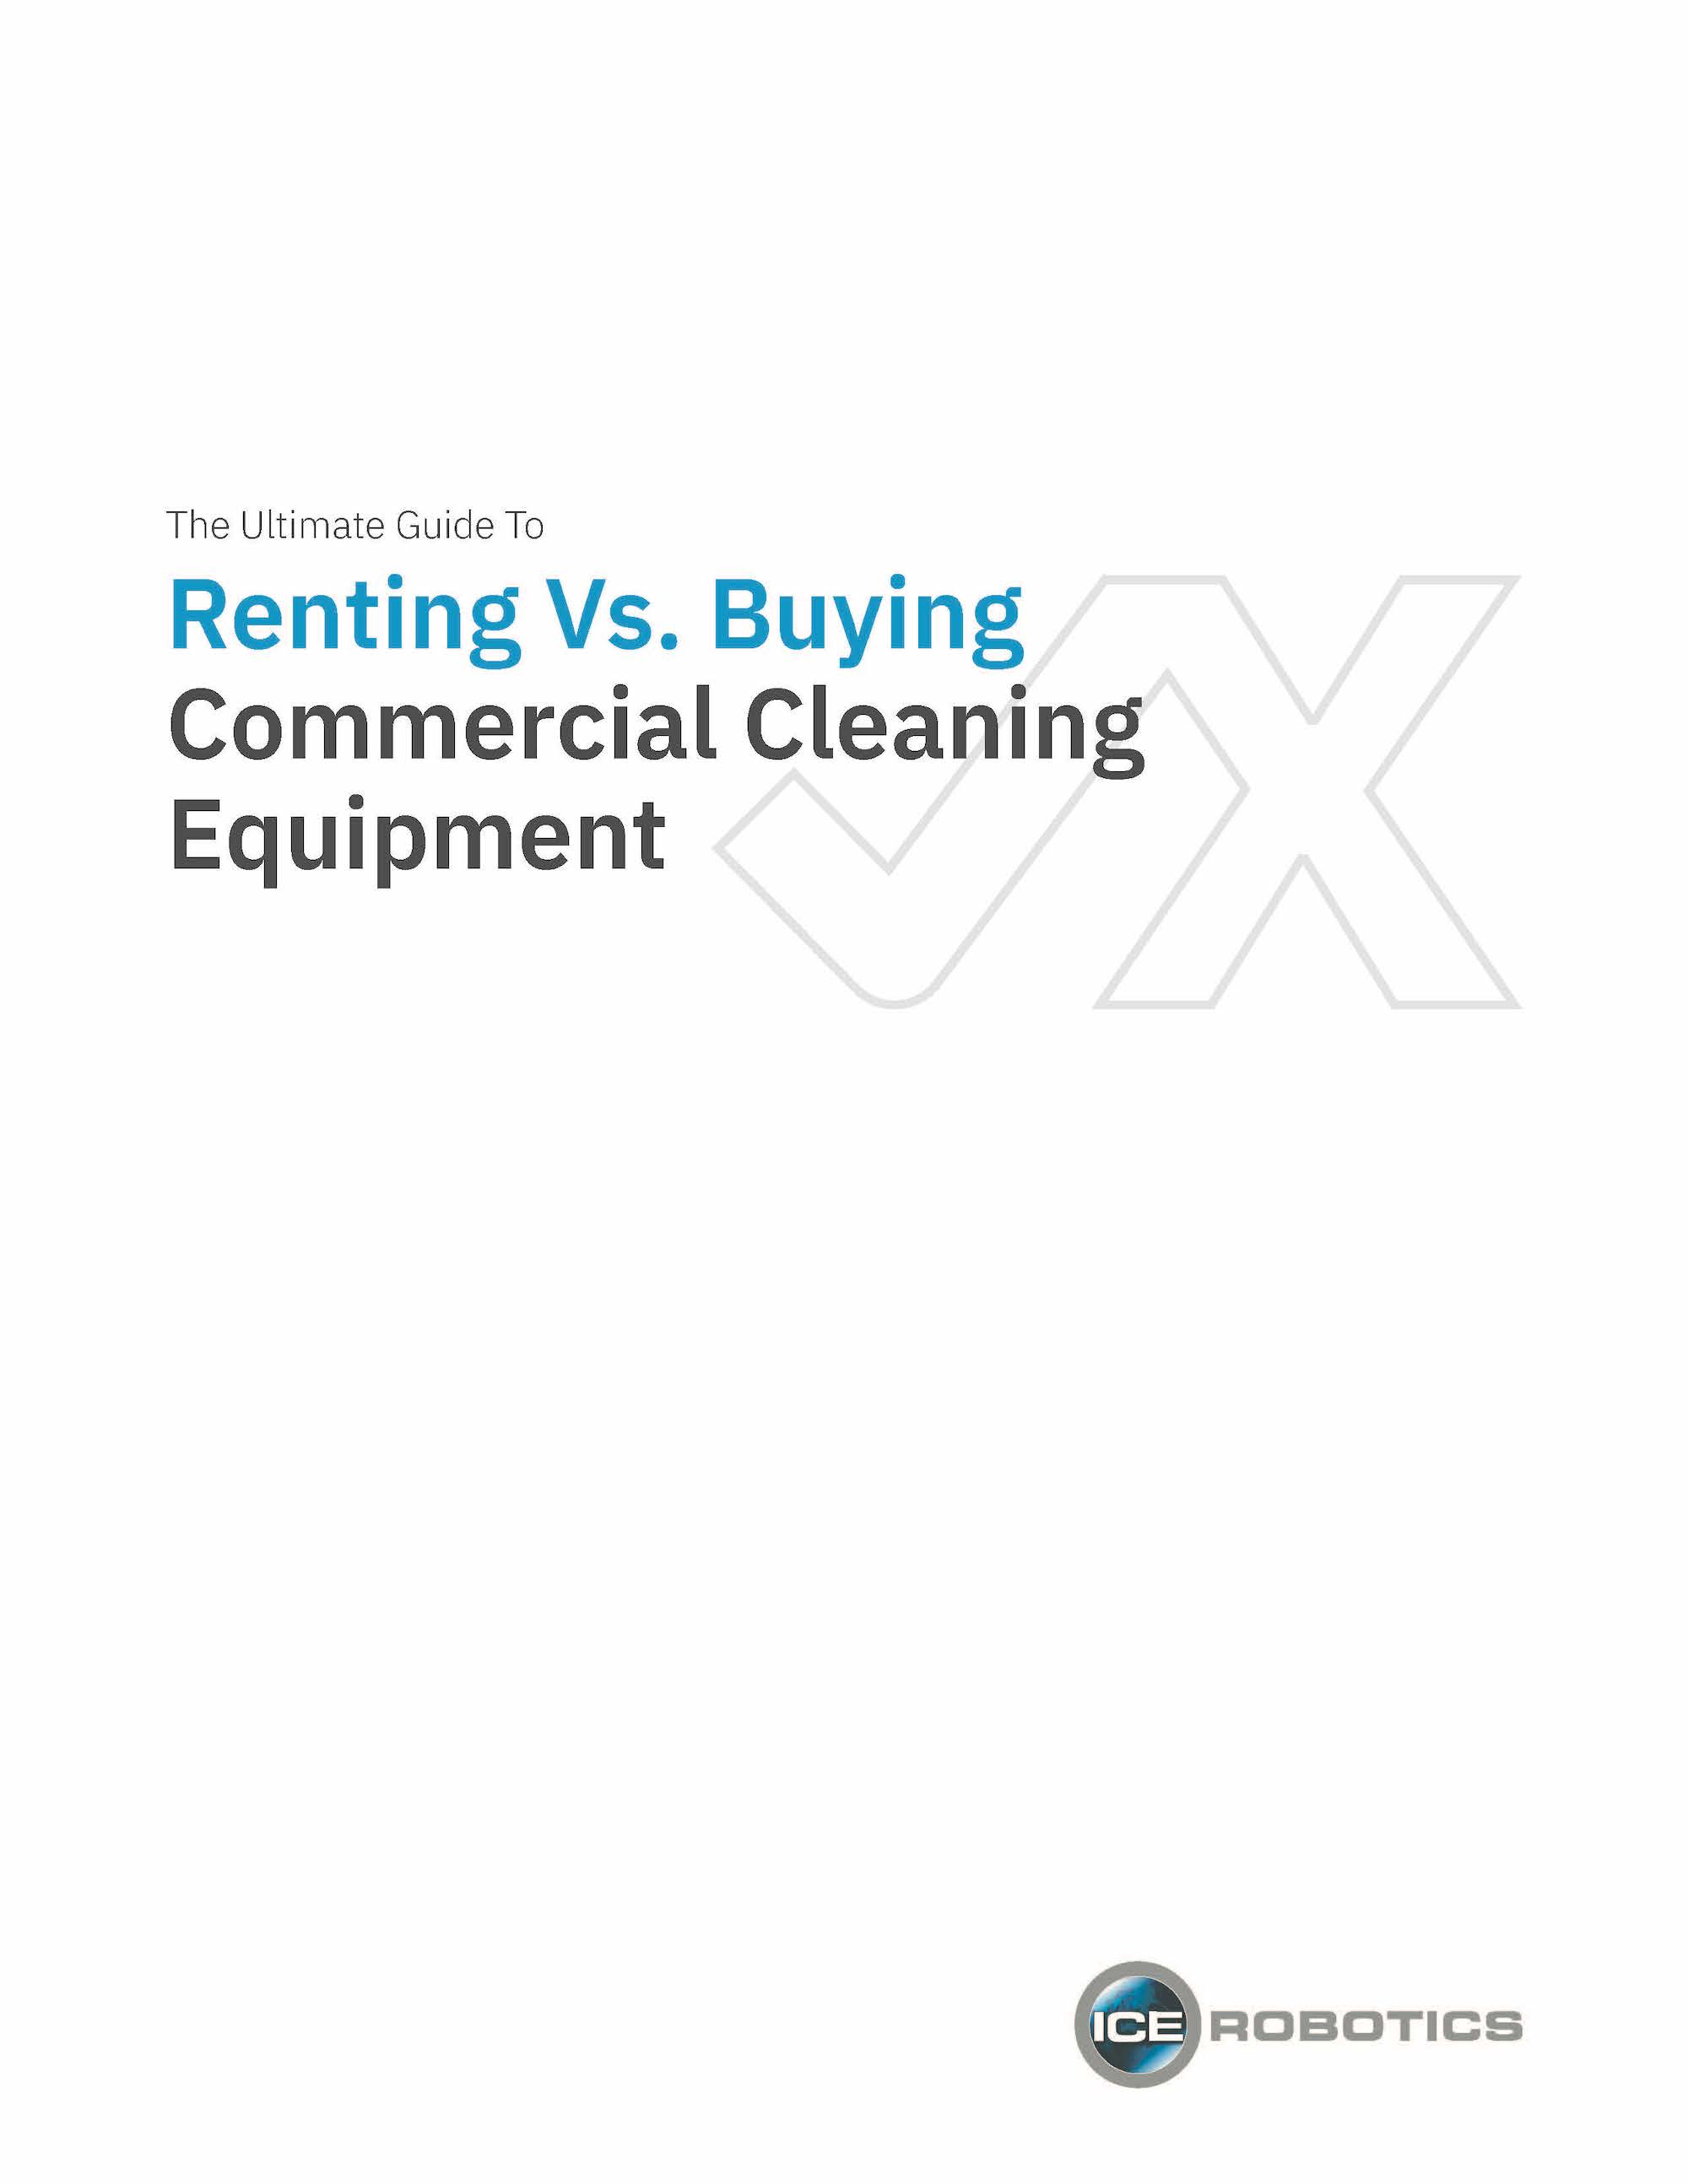 Guide to Renting Vs Buying Cleaning Equipment Cover Page